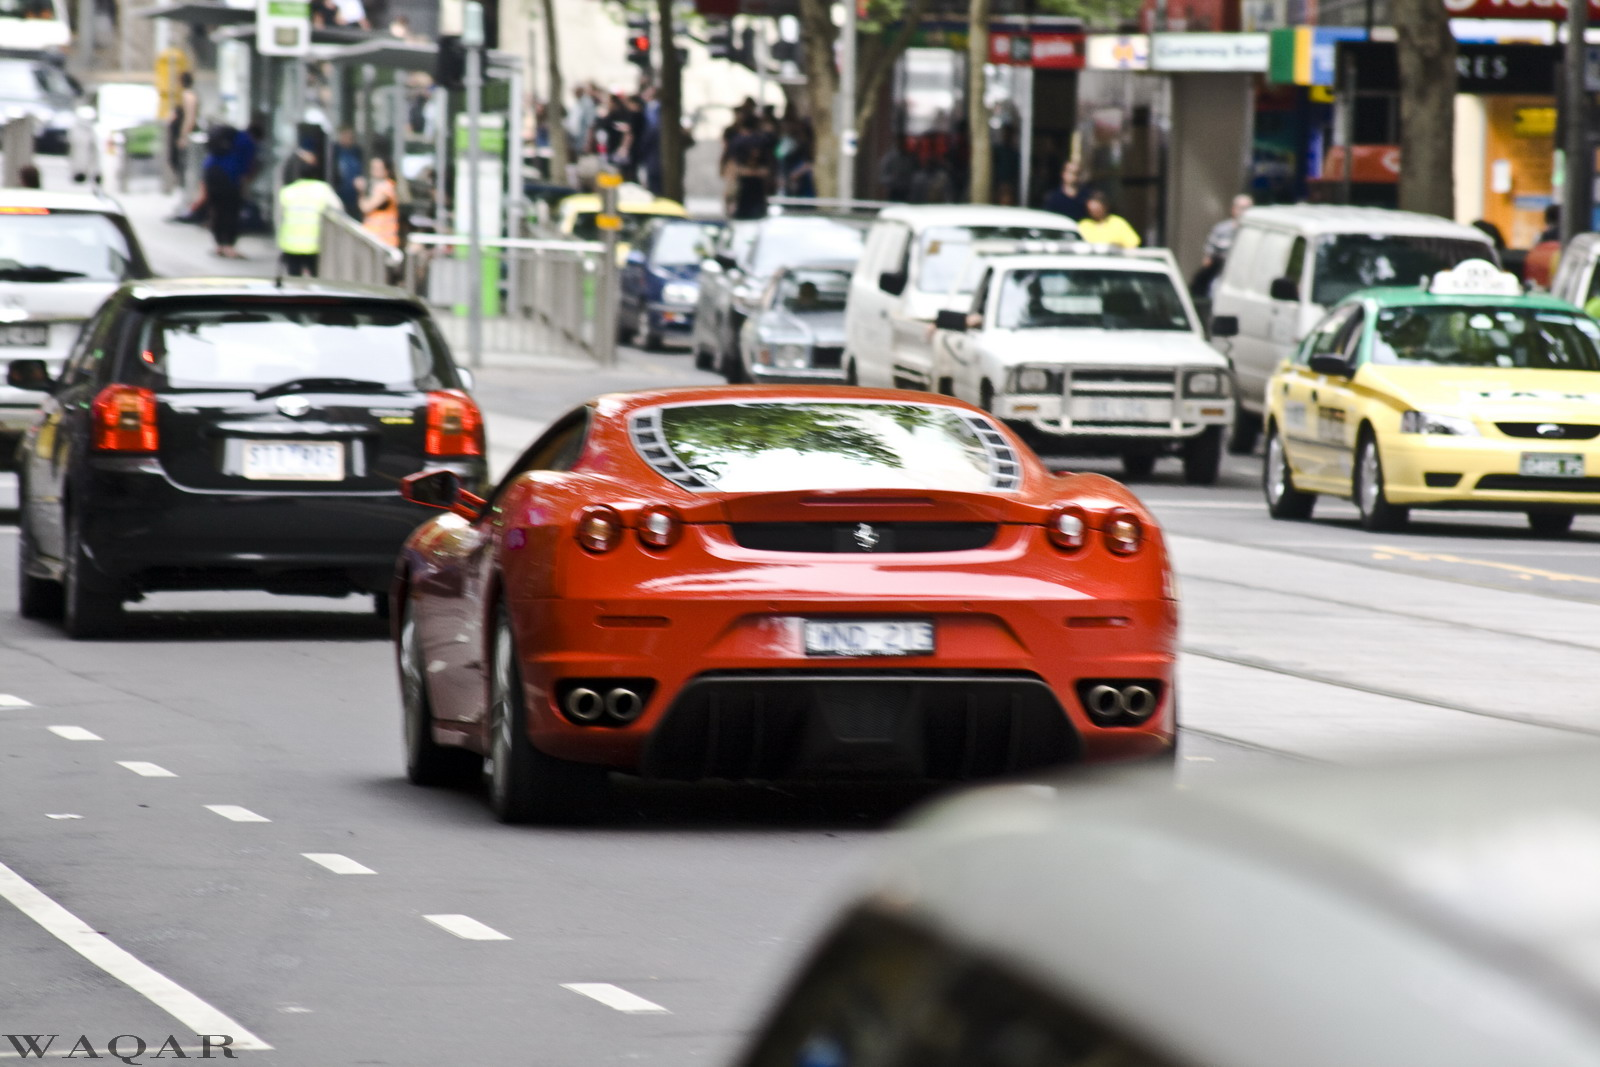 Melbourne Car Photoshoot Location | For Sale | Australia | Buy & Sell Sports